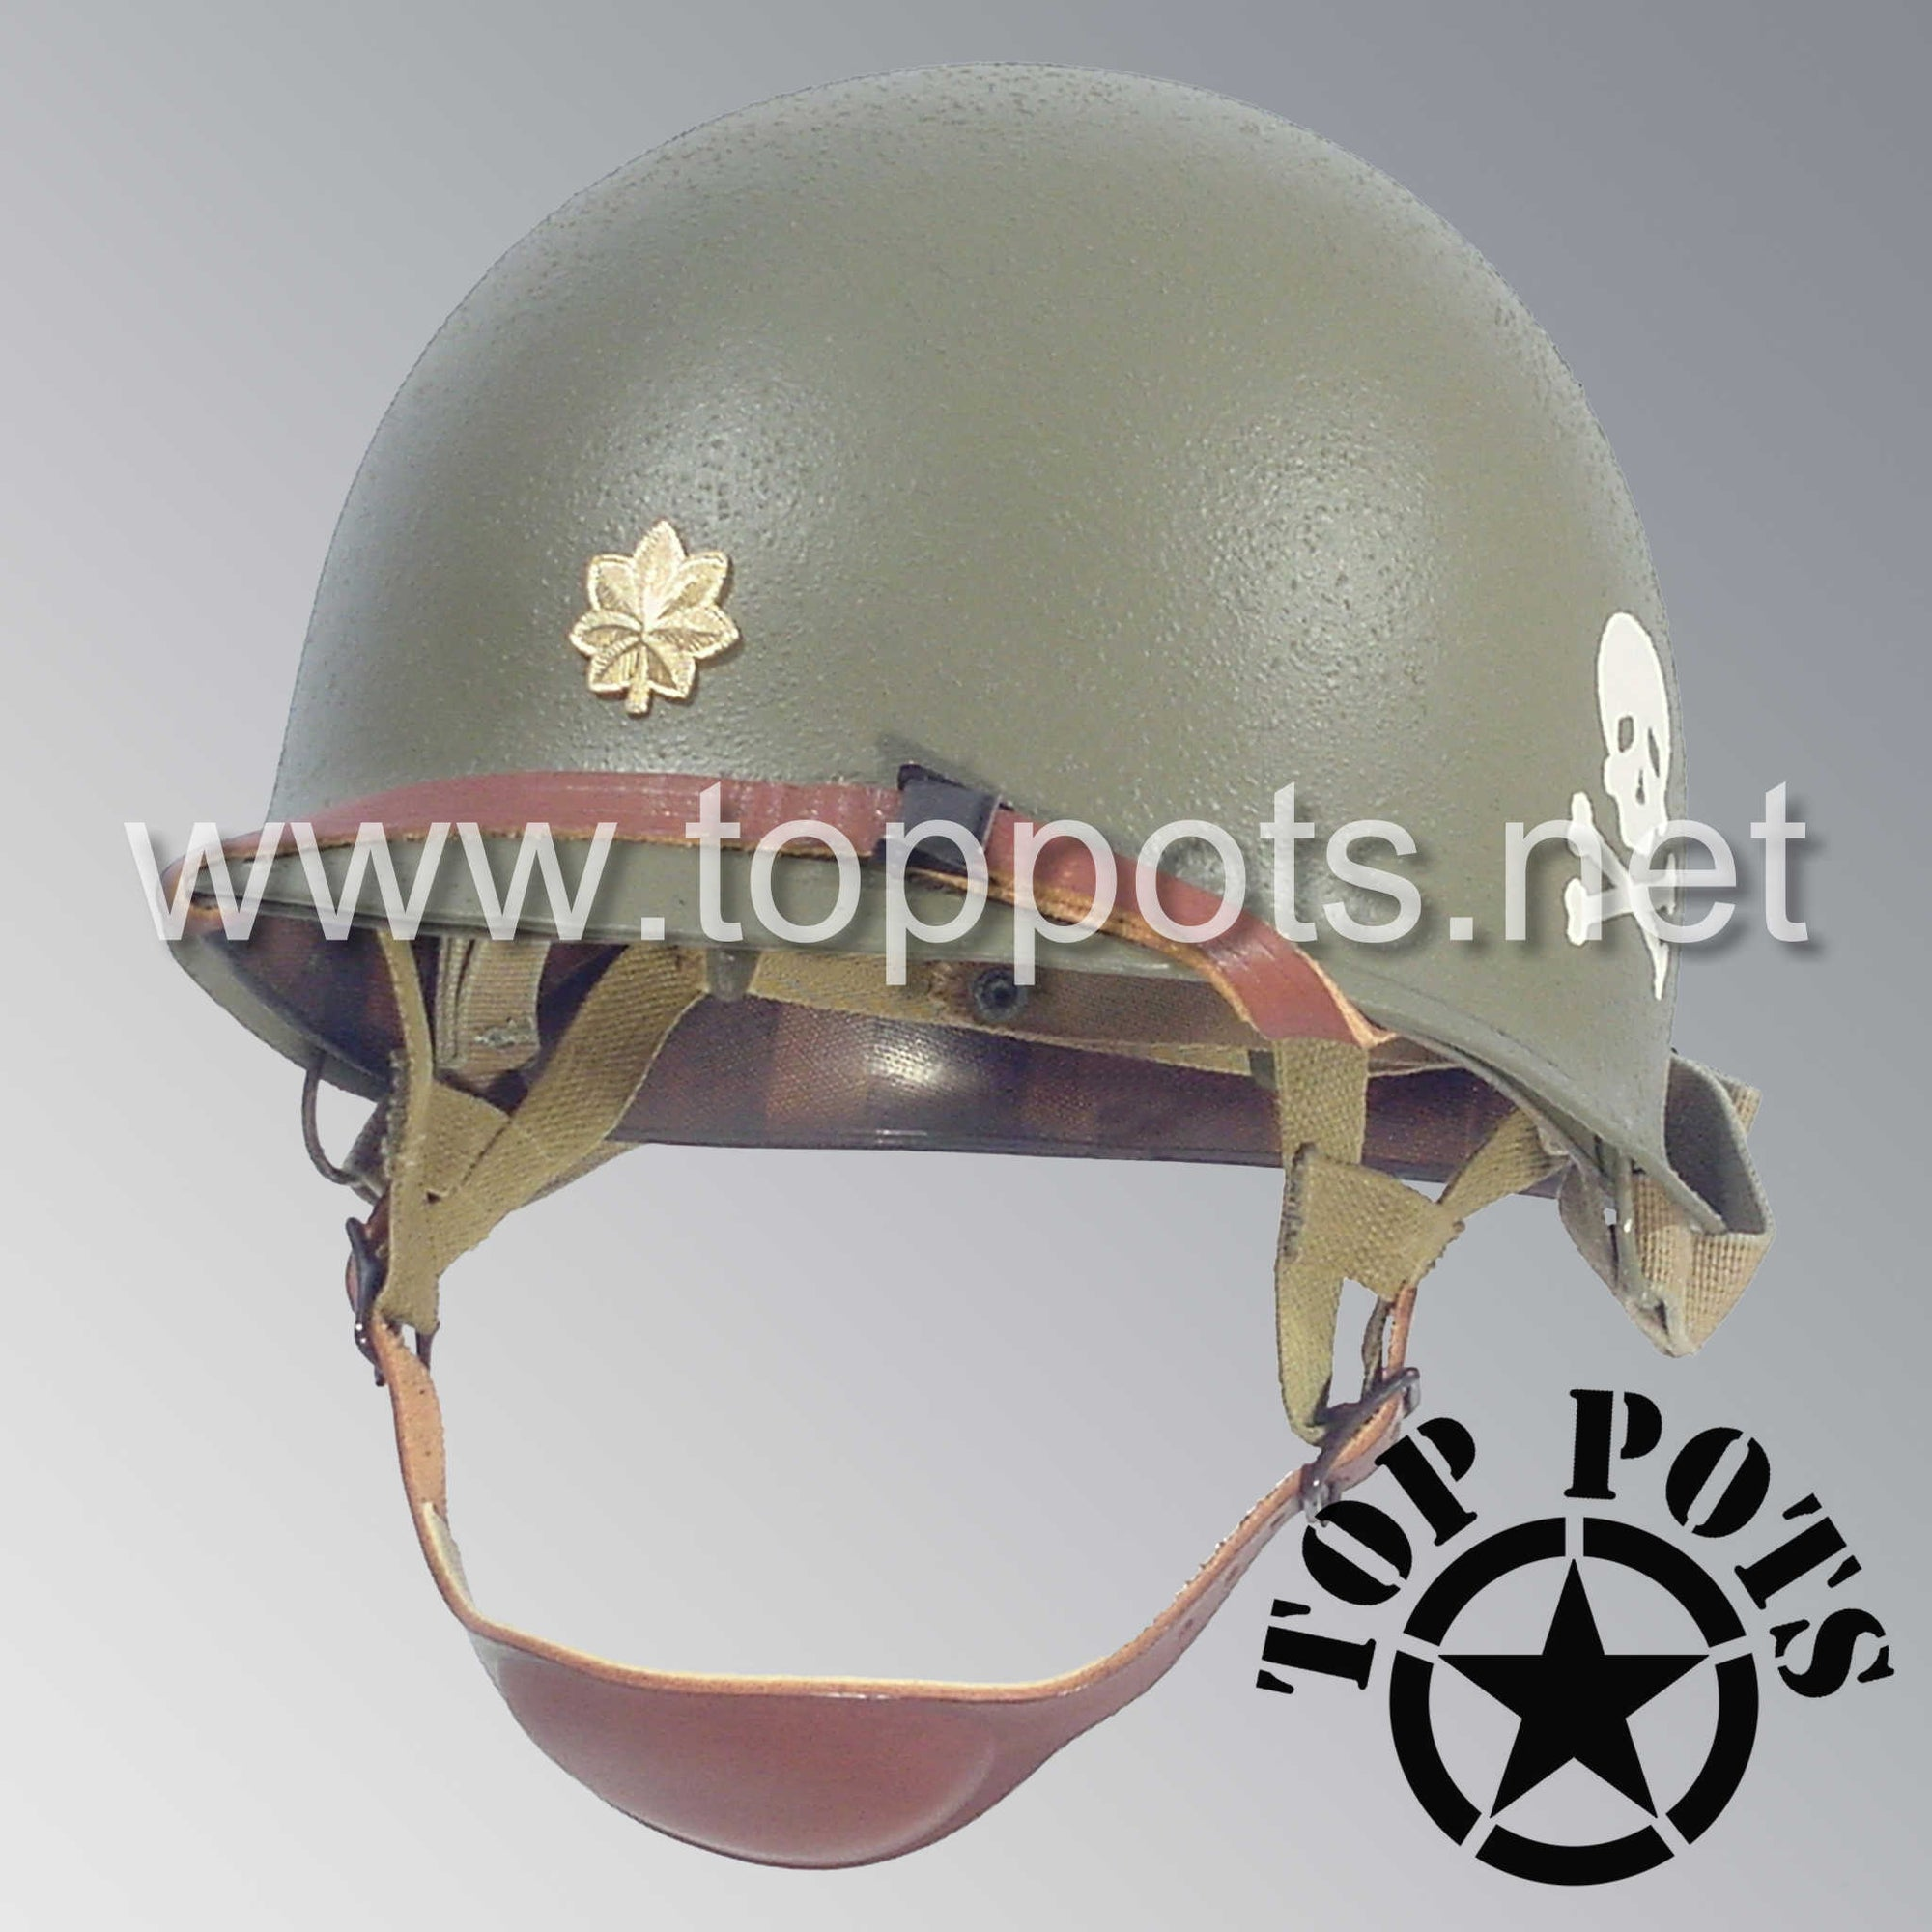 Image 1 of WWII US Army Restored Original M2 Paratrooper Airborne Helmet D Bale Shell and Liner with 504th PIR Officer Metal Major Rank Emblem